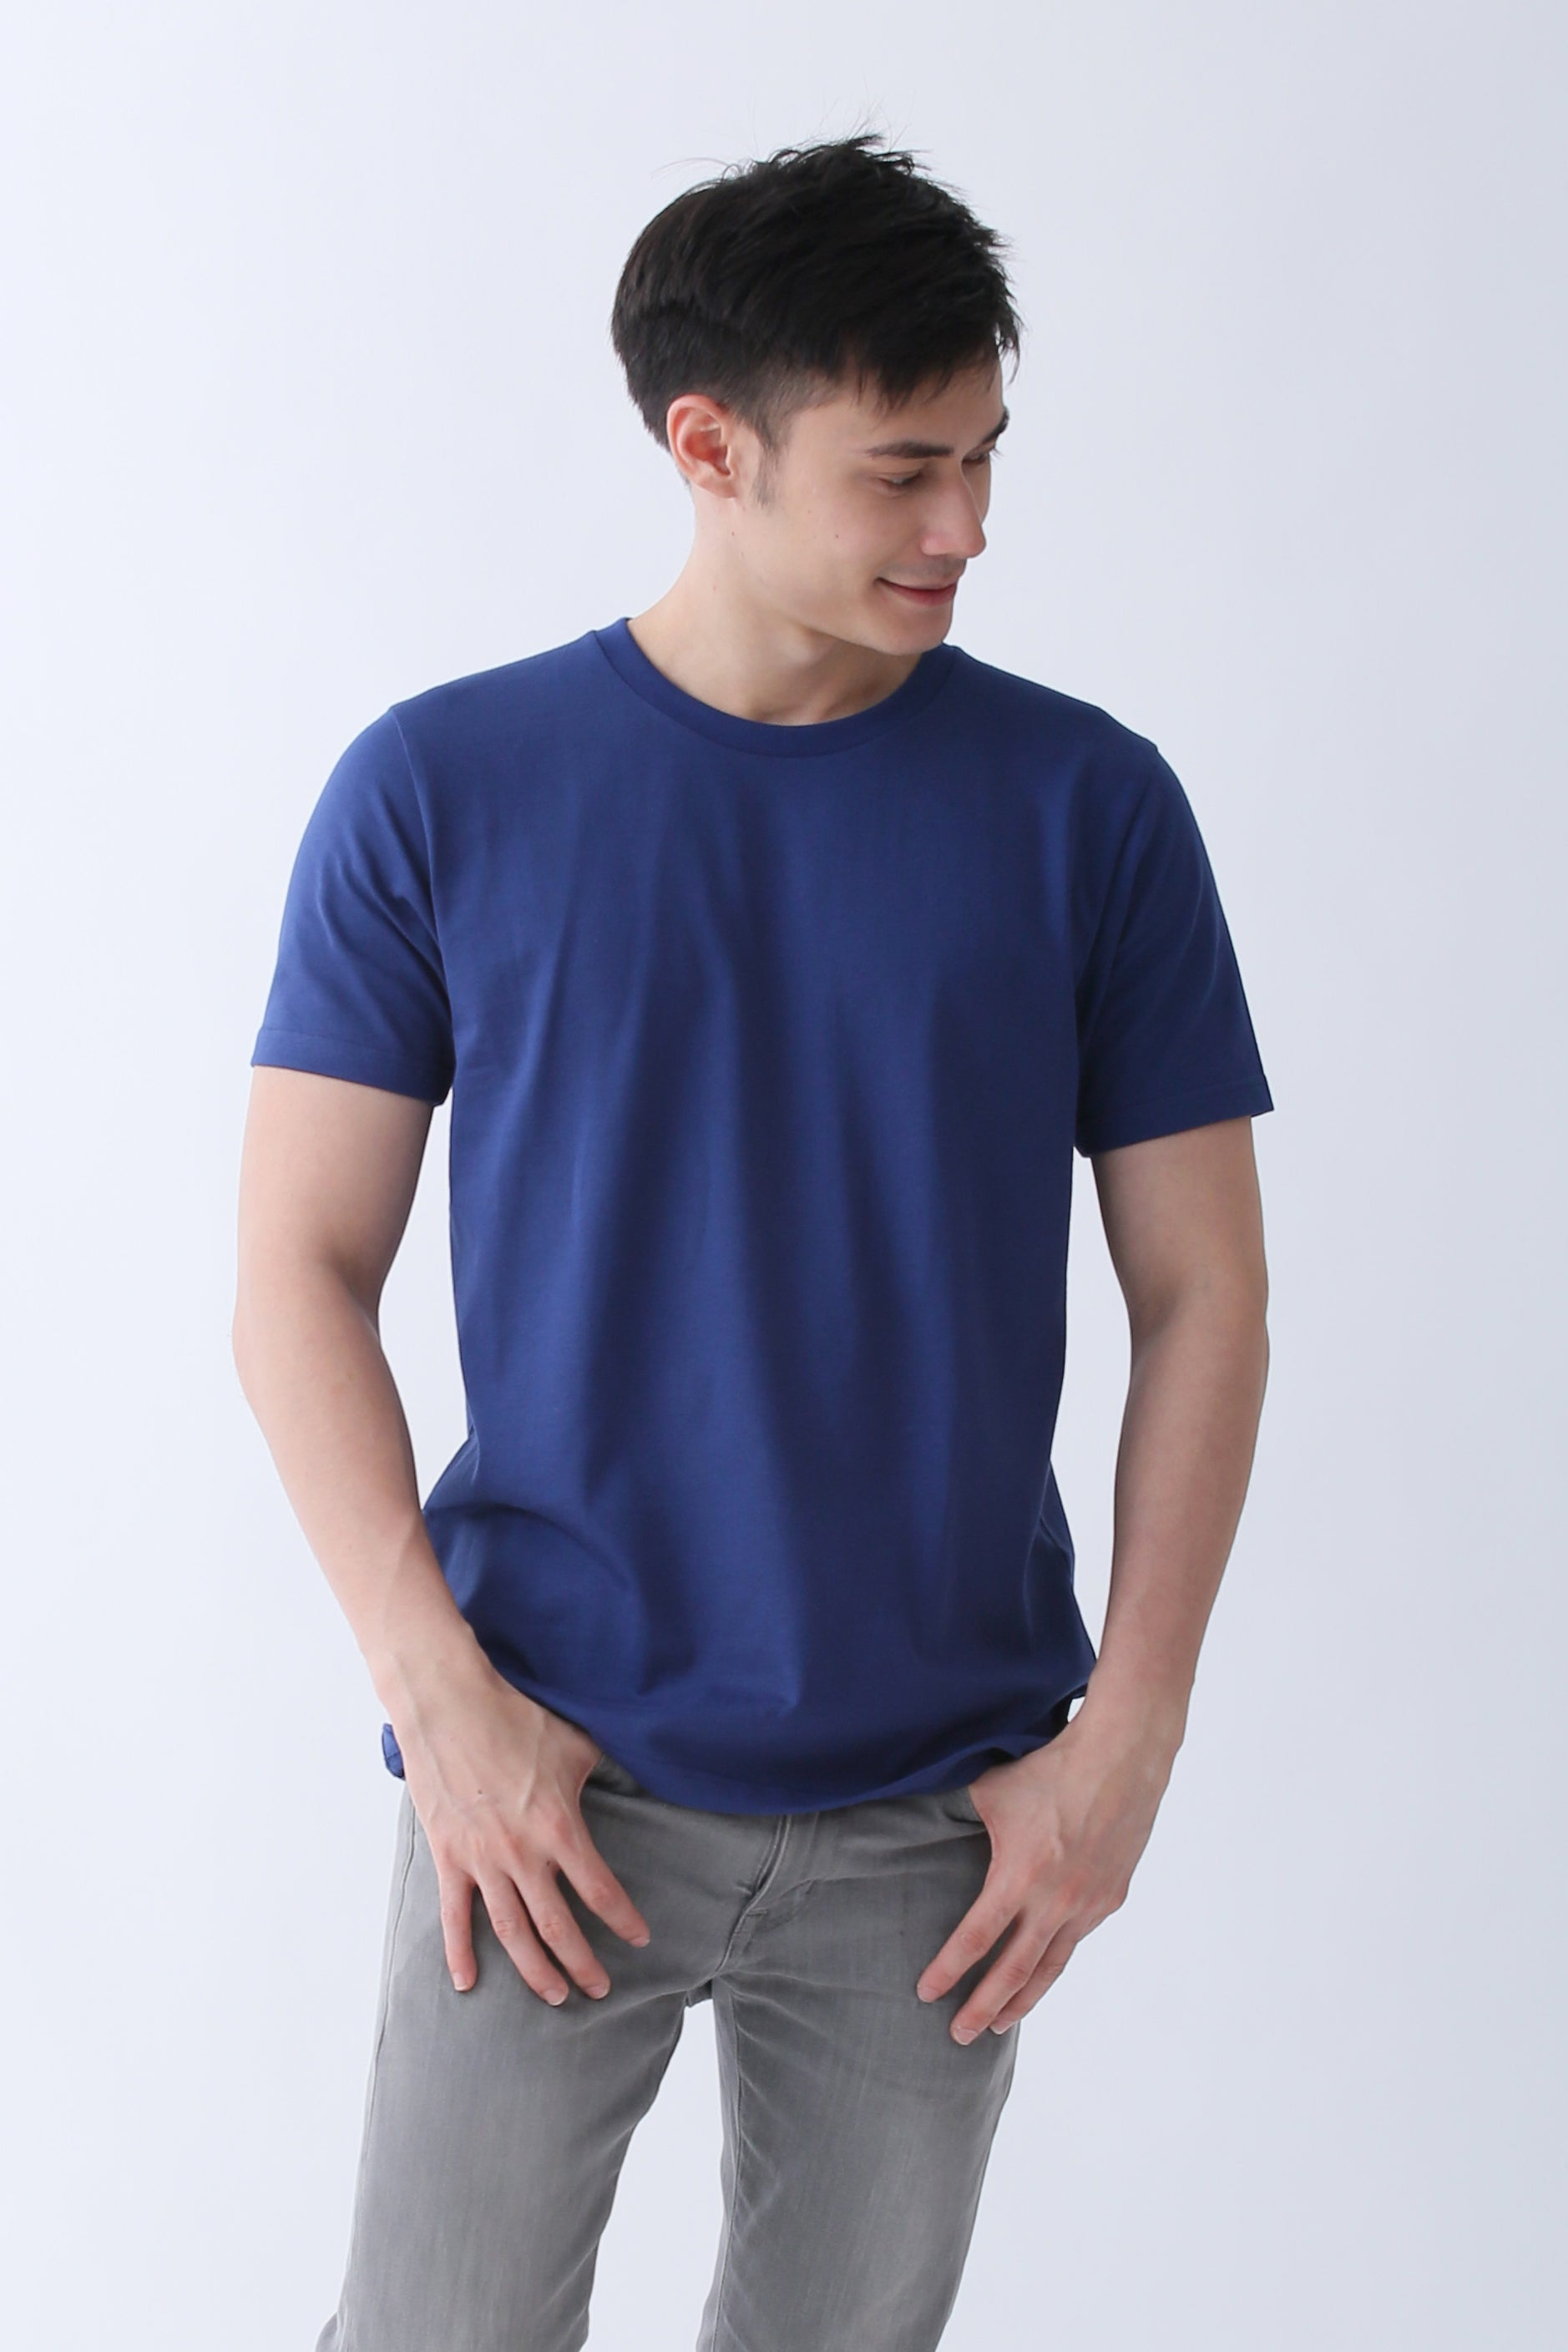 8a47e550ee Supima Cotton Crew Neck T-shirt | Navy Blue | For Men - Buttonwell